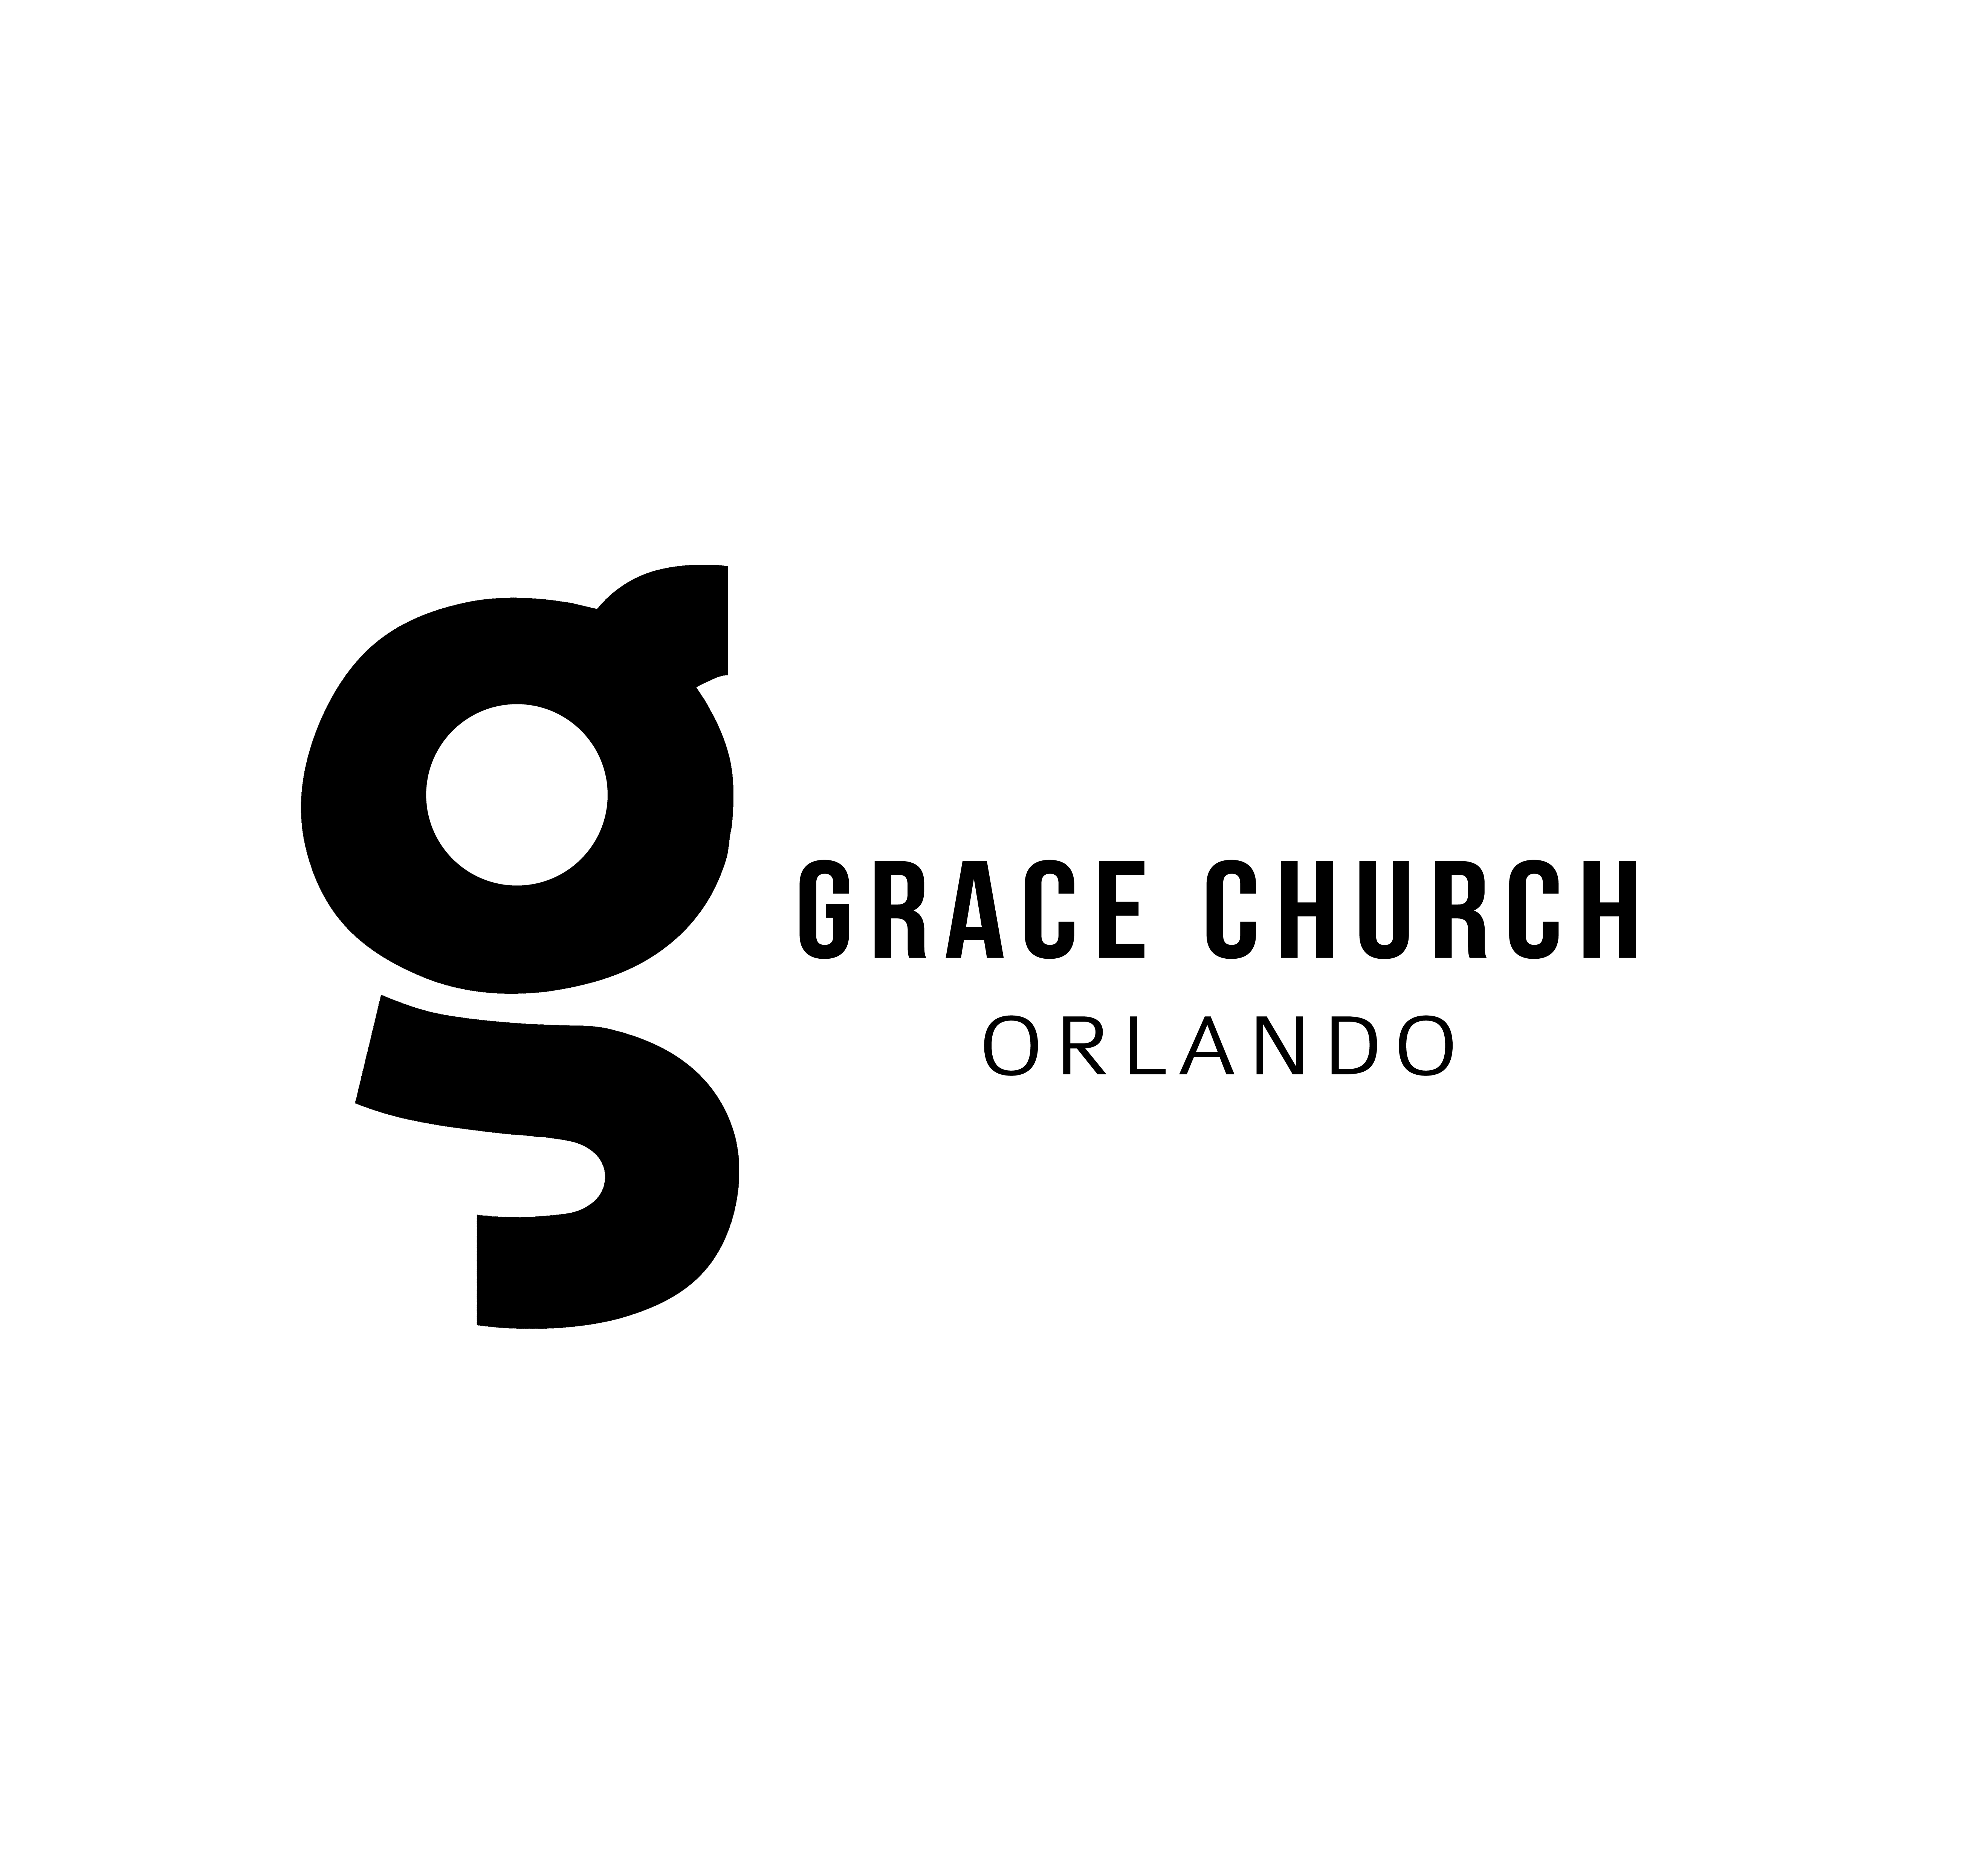 Grace Church Orlando